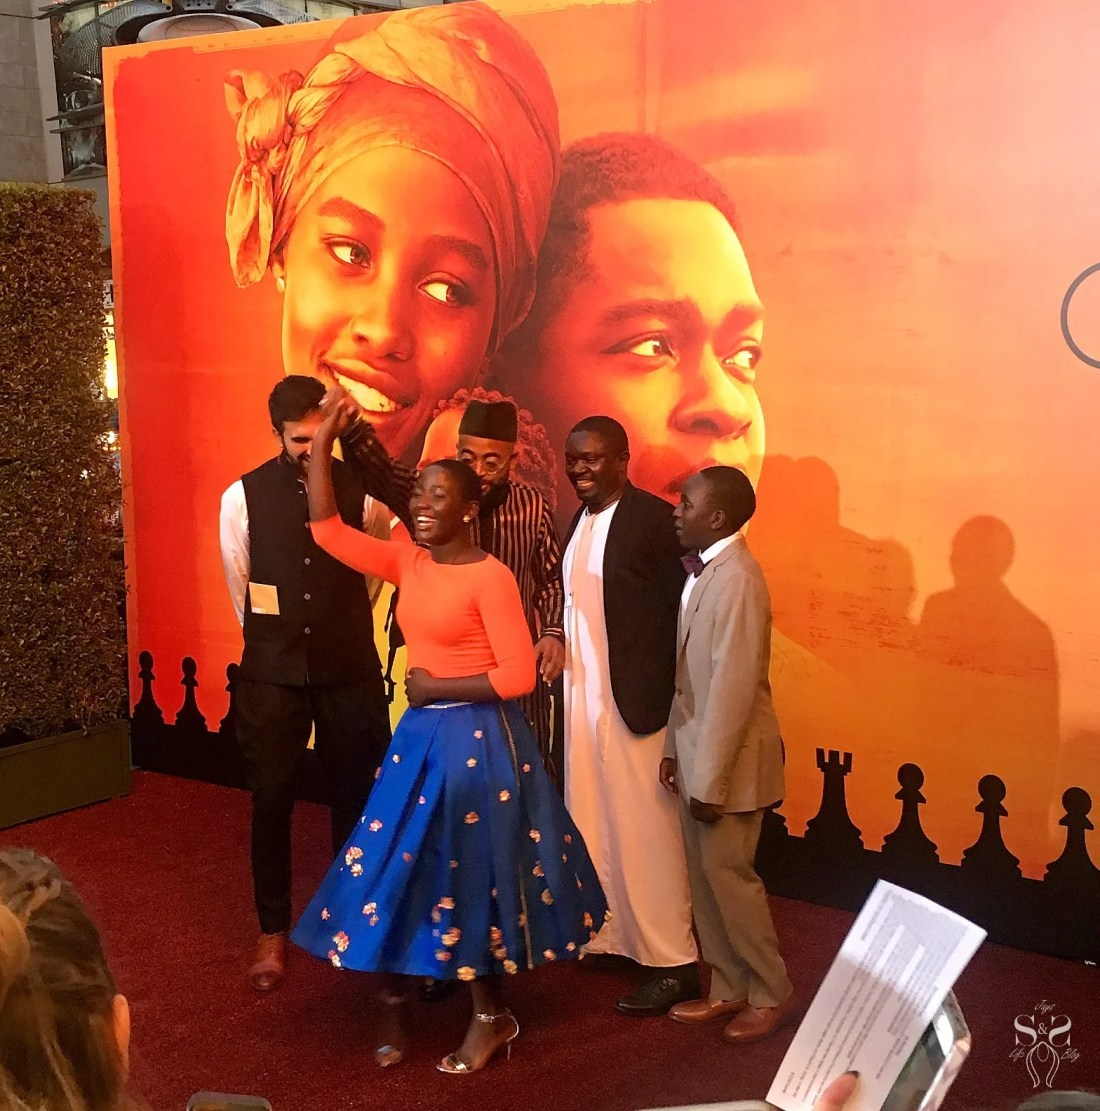 Walking The Red Carpet For Disney's Queen Of Katwe Premiere